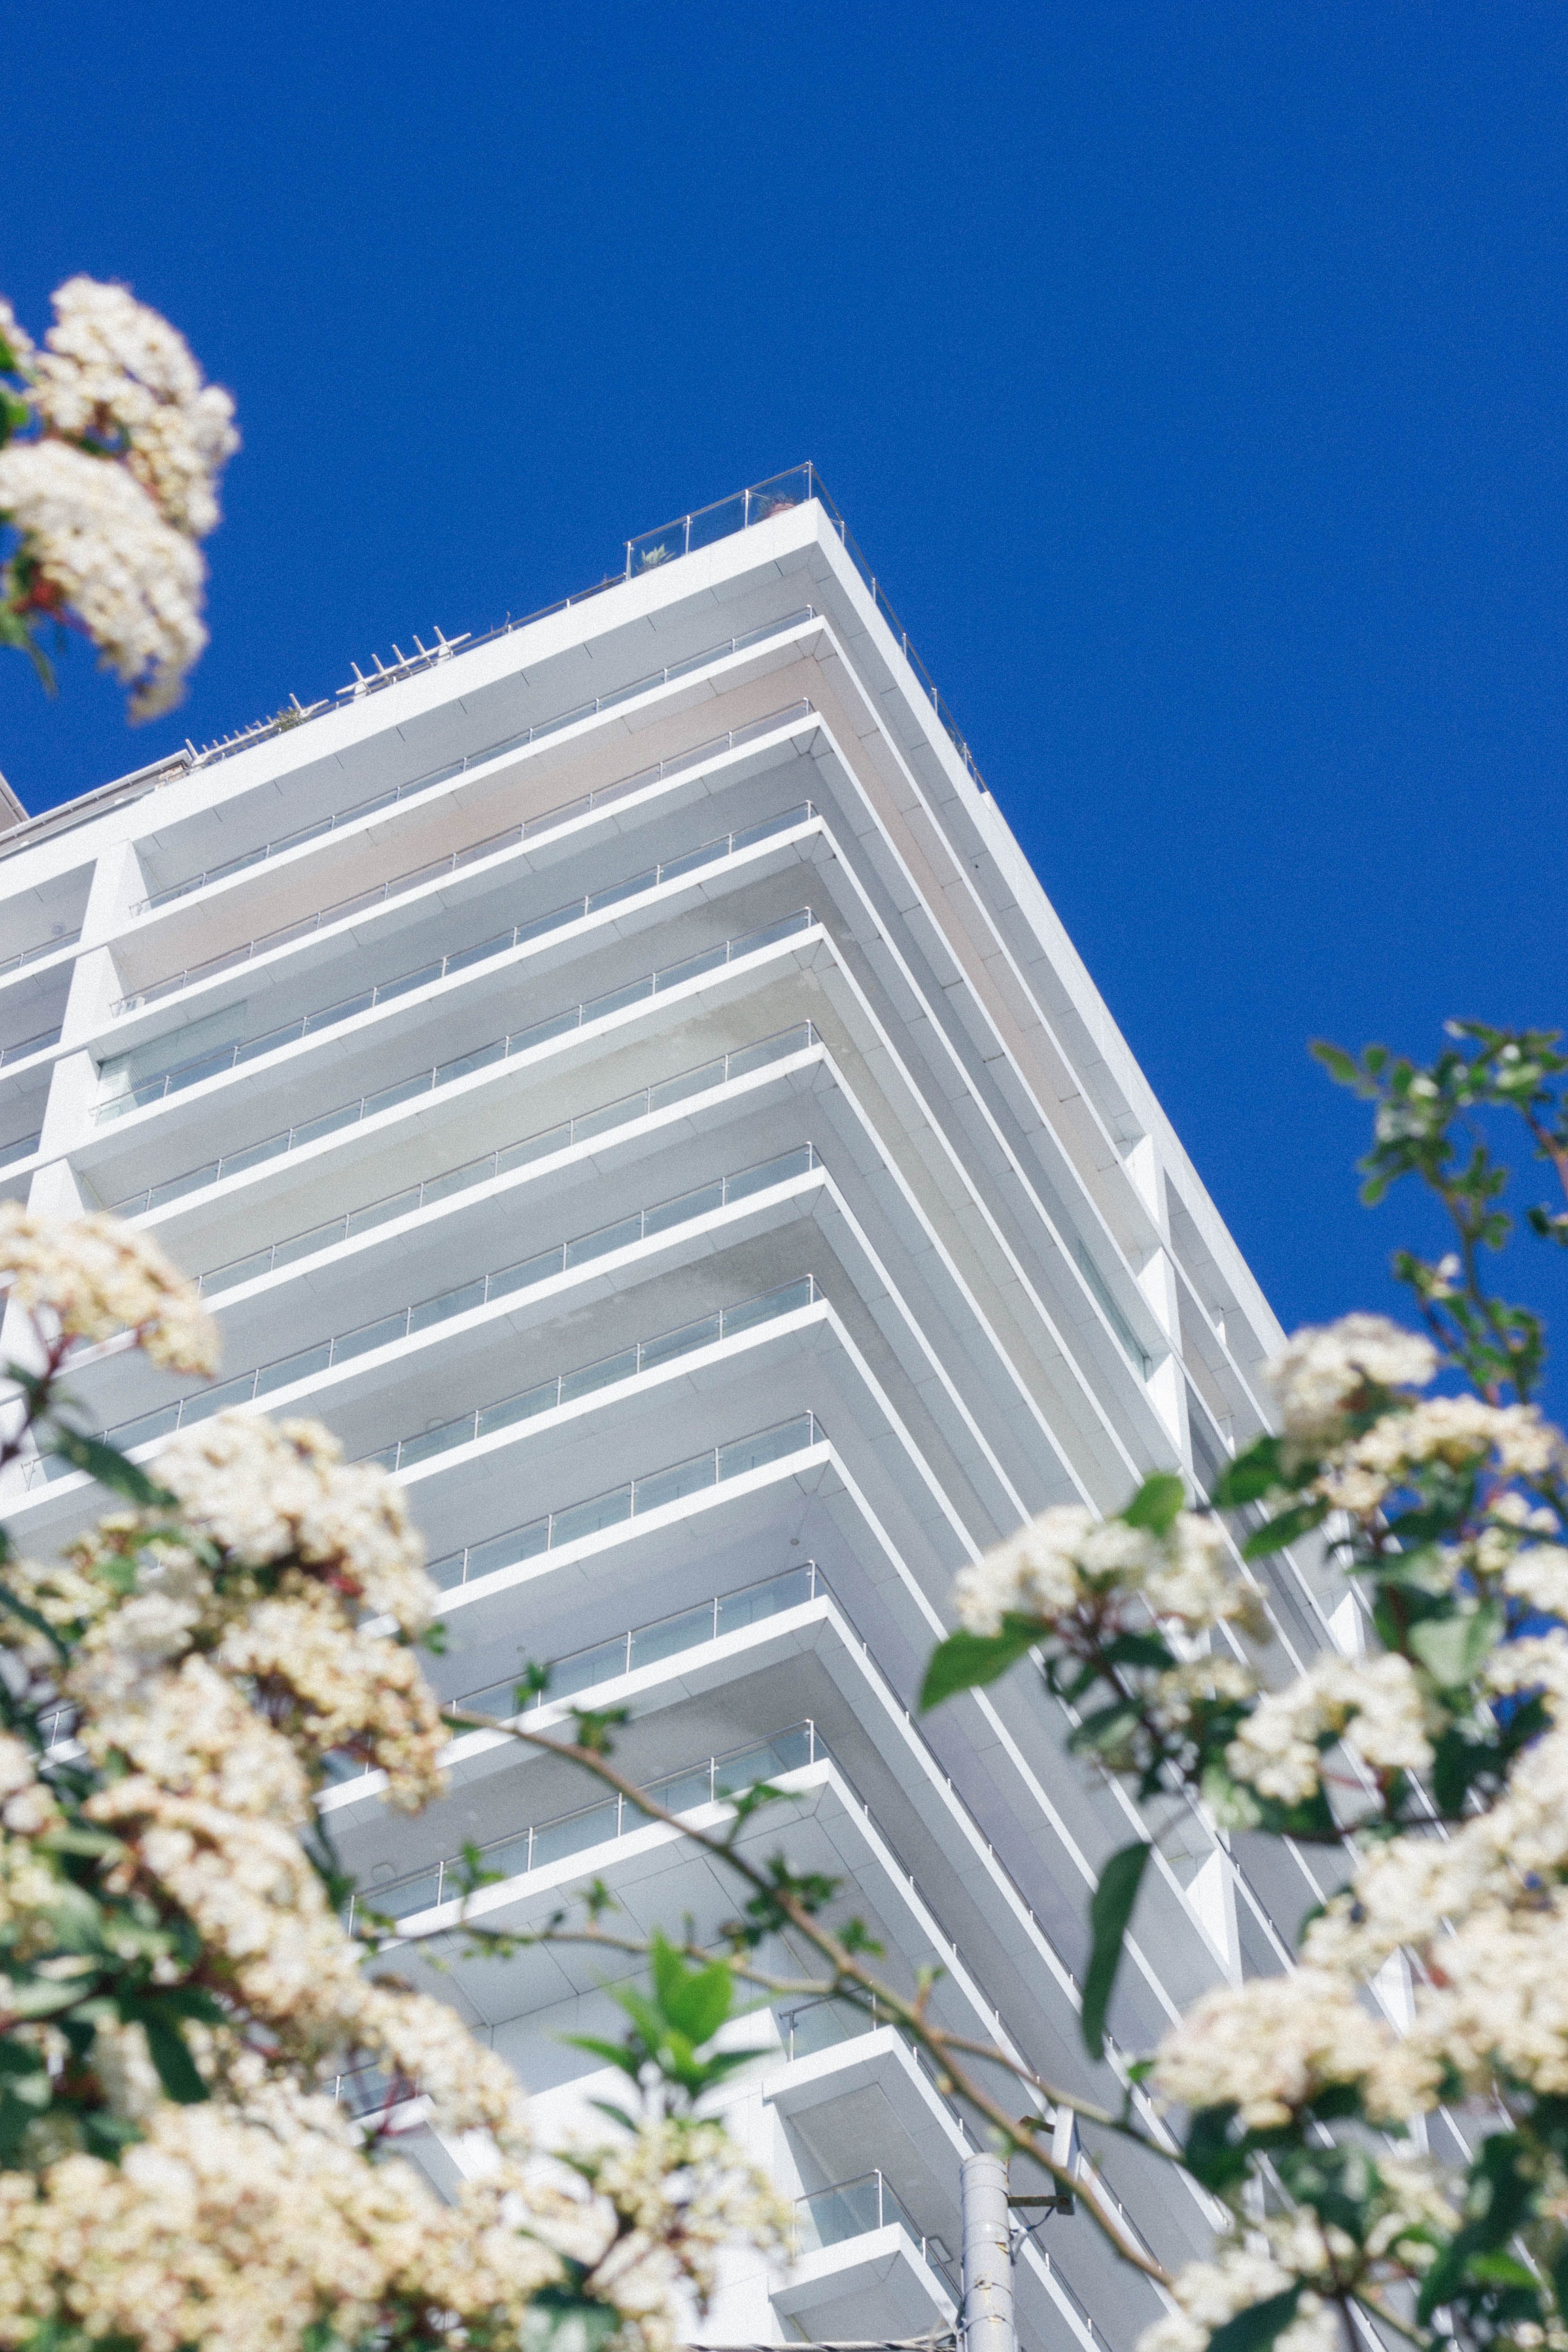 White Cherry Blossoms Beside High-rise Building